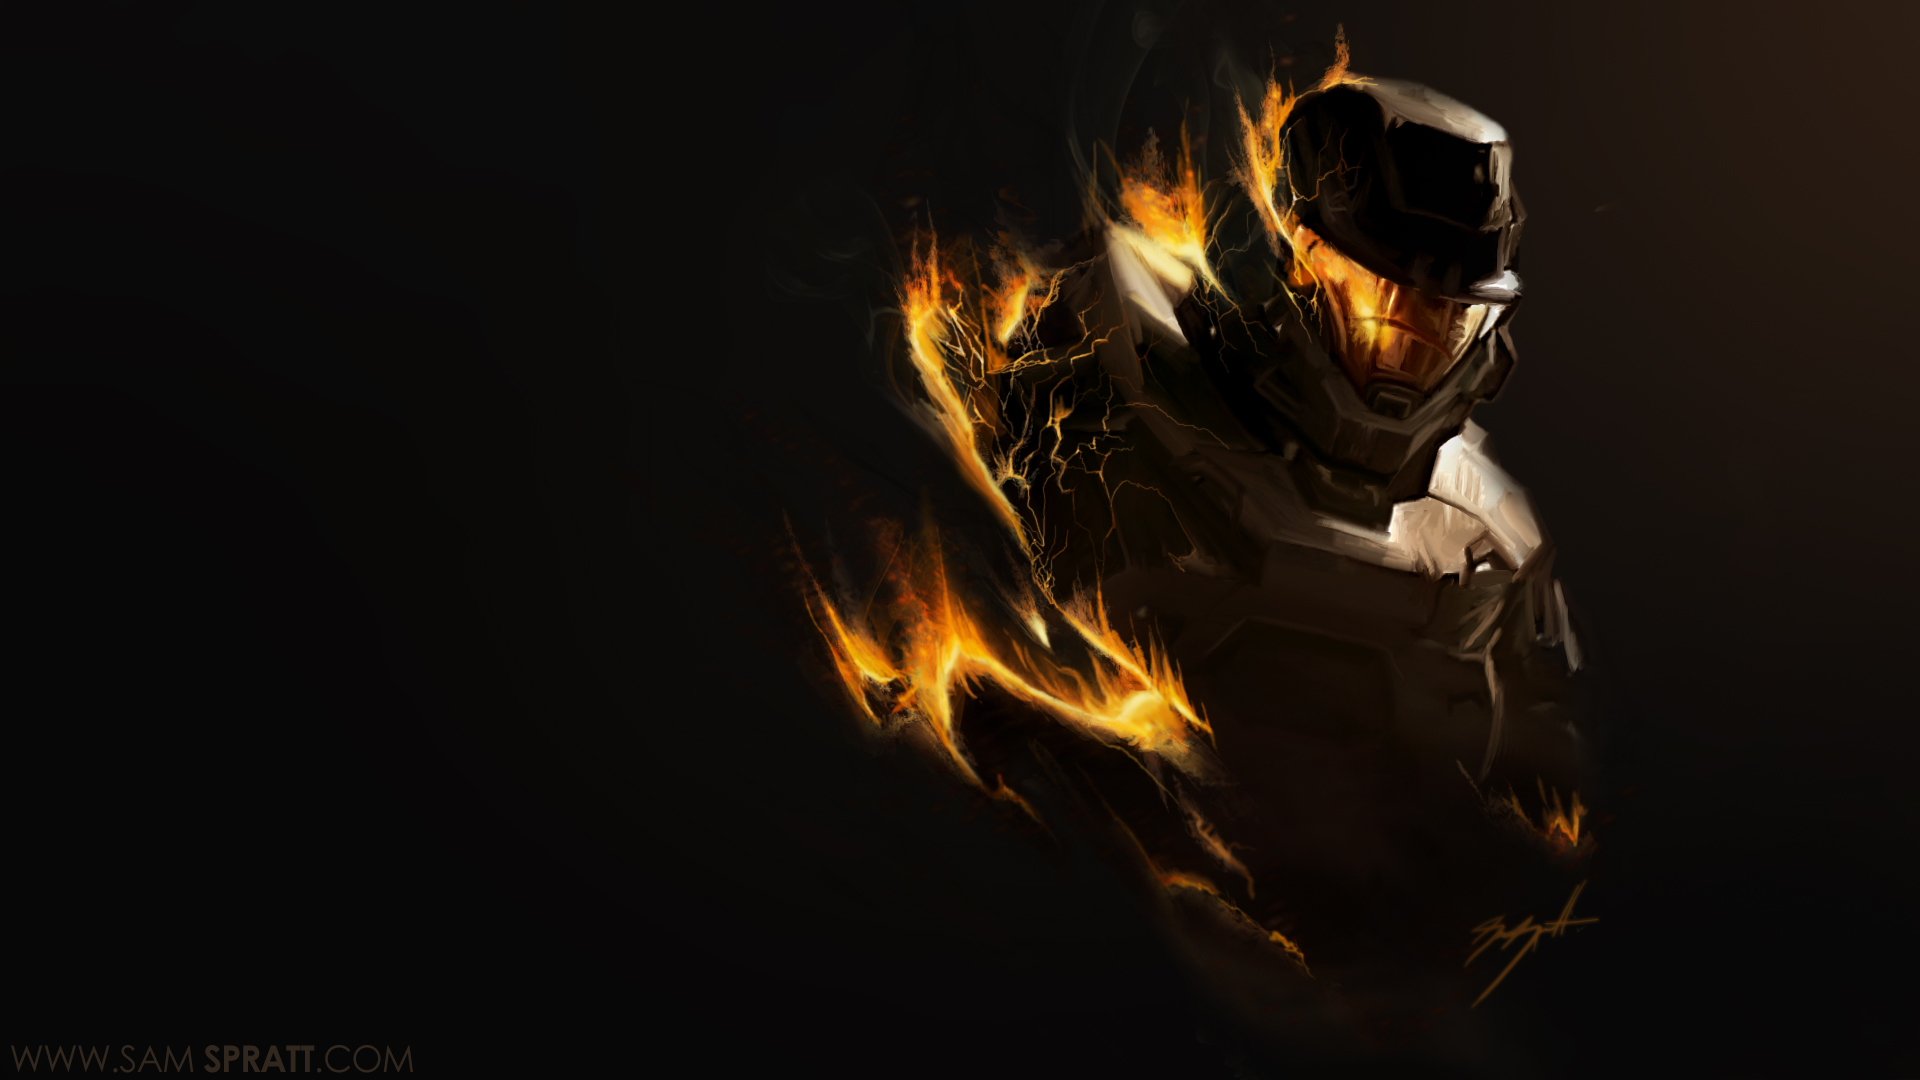 halo reach wallpaper black background chief winter remember 1920x1080